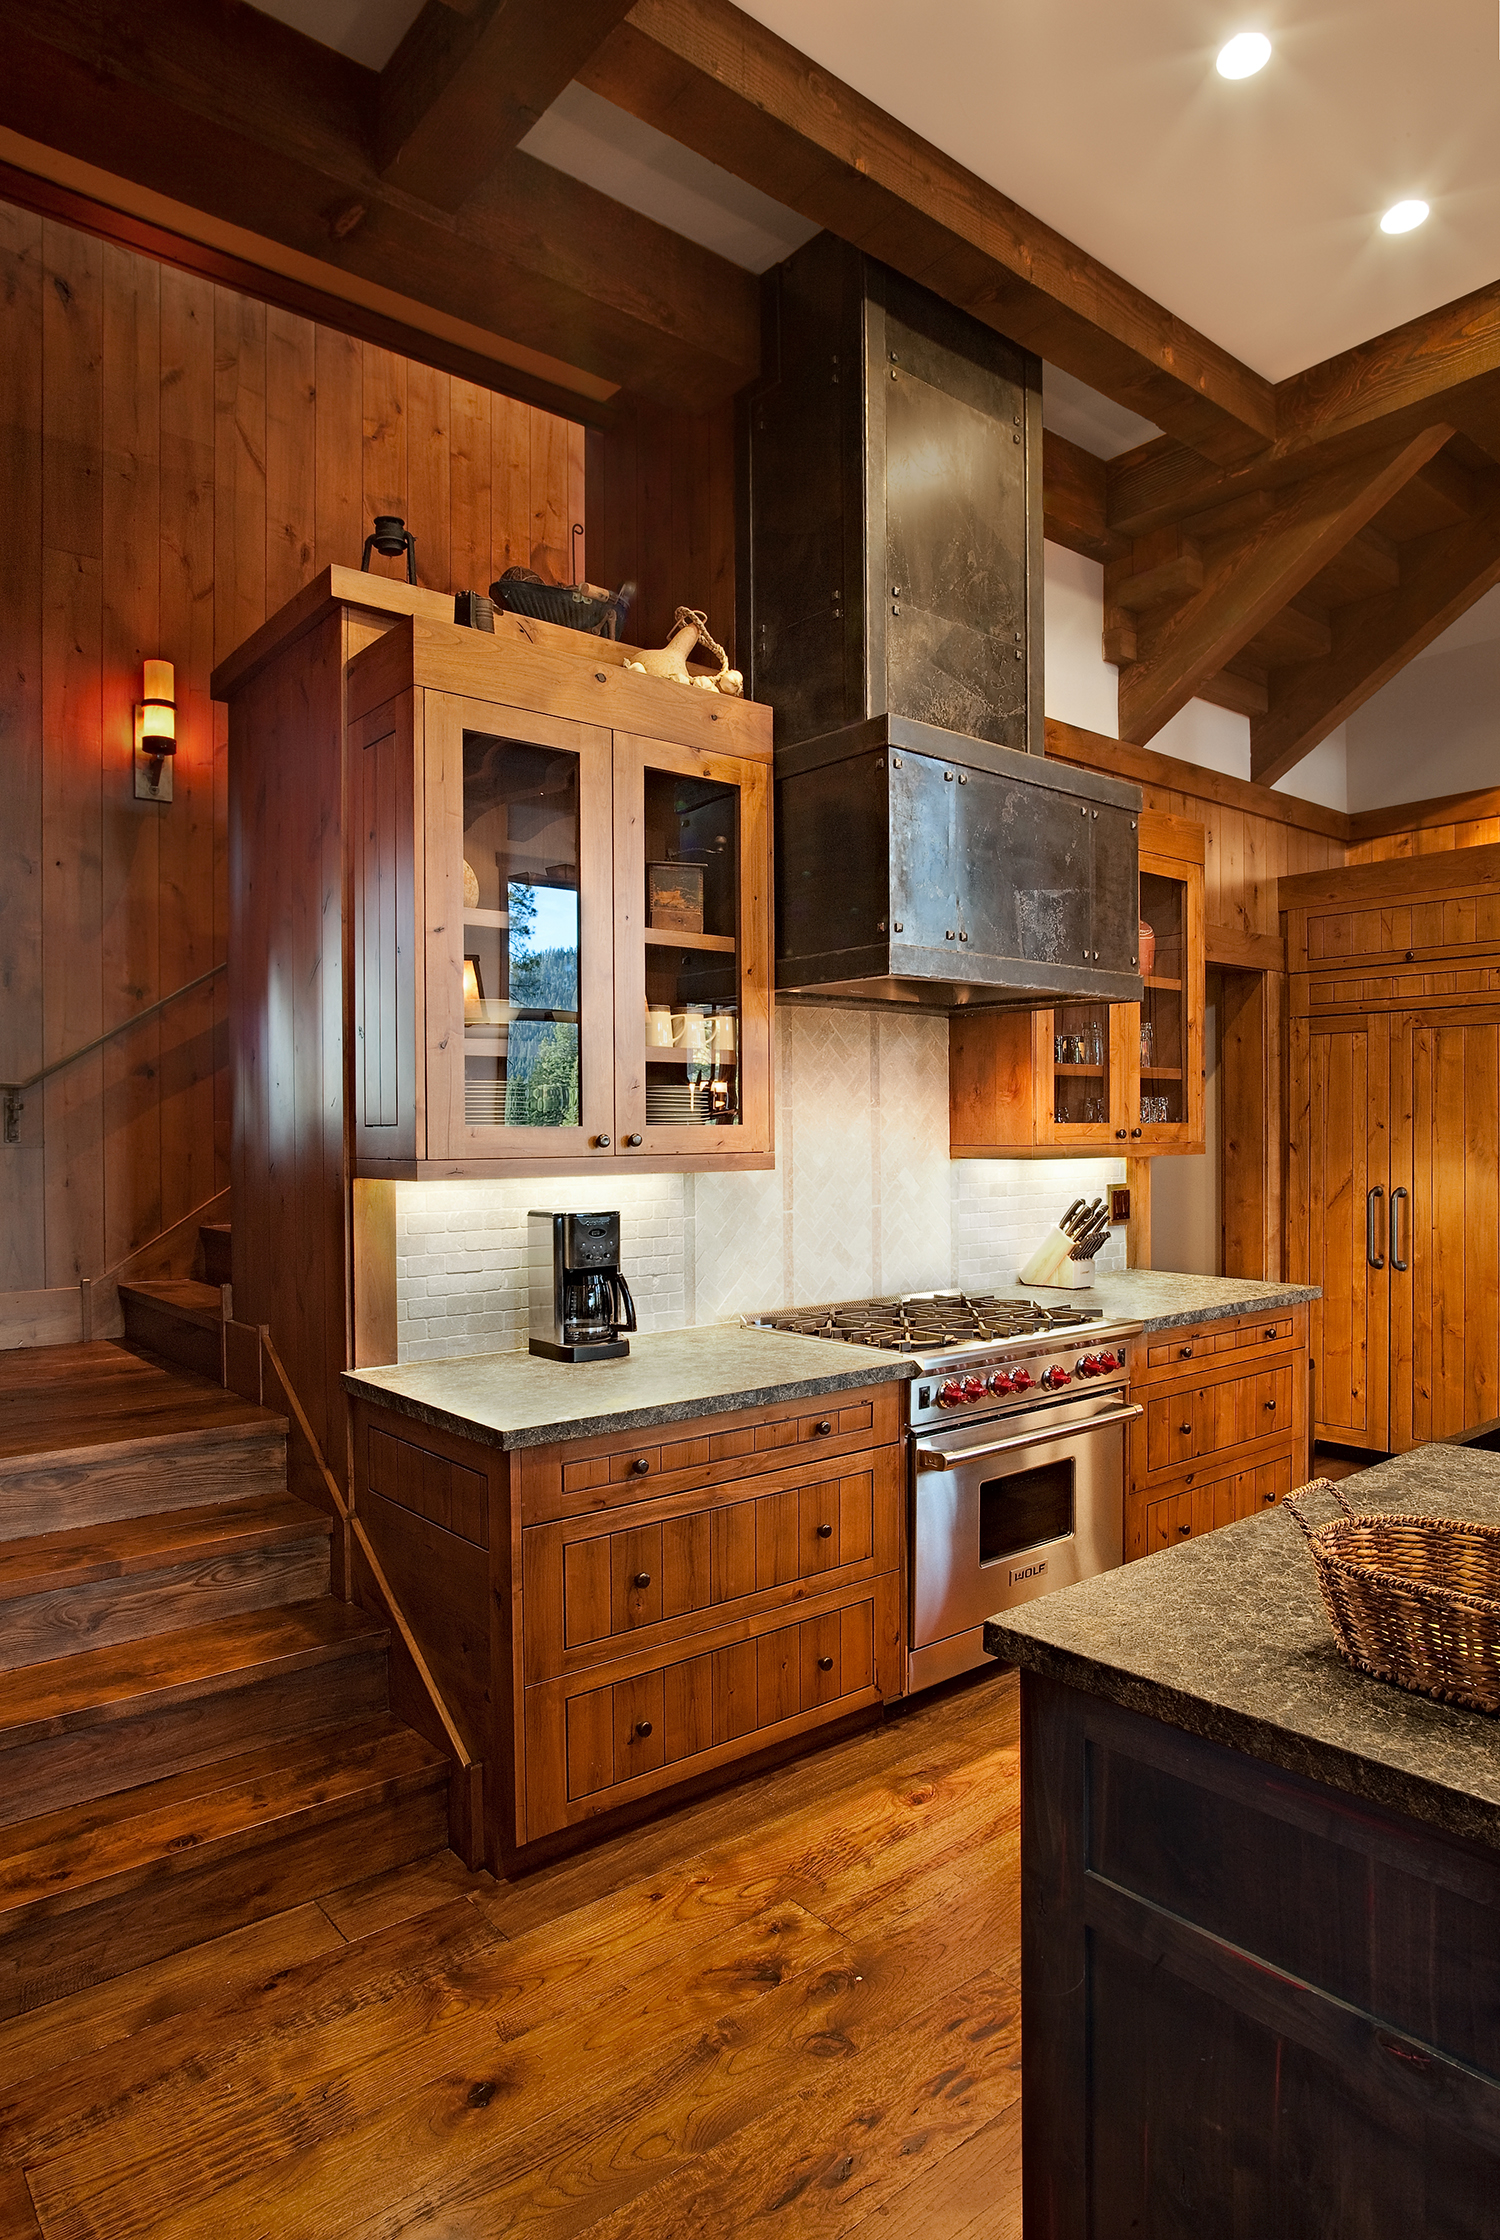 Lot 284_Kitchen_Metal Wall Hood_Wood Floors.jpg